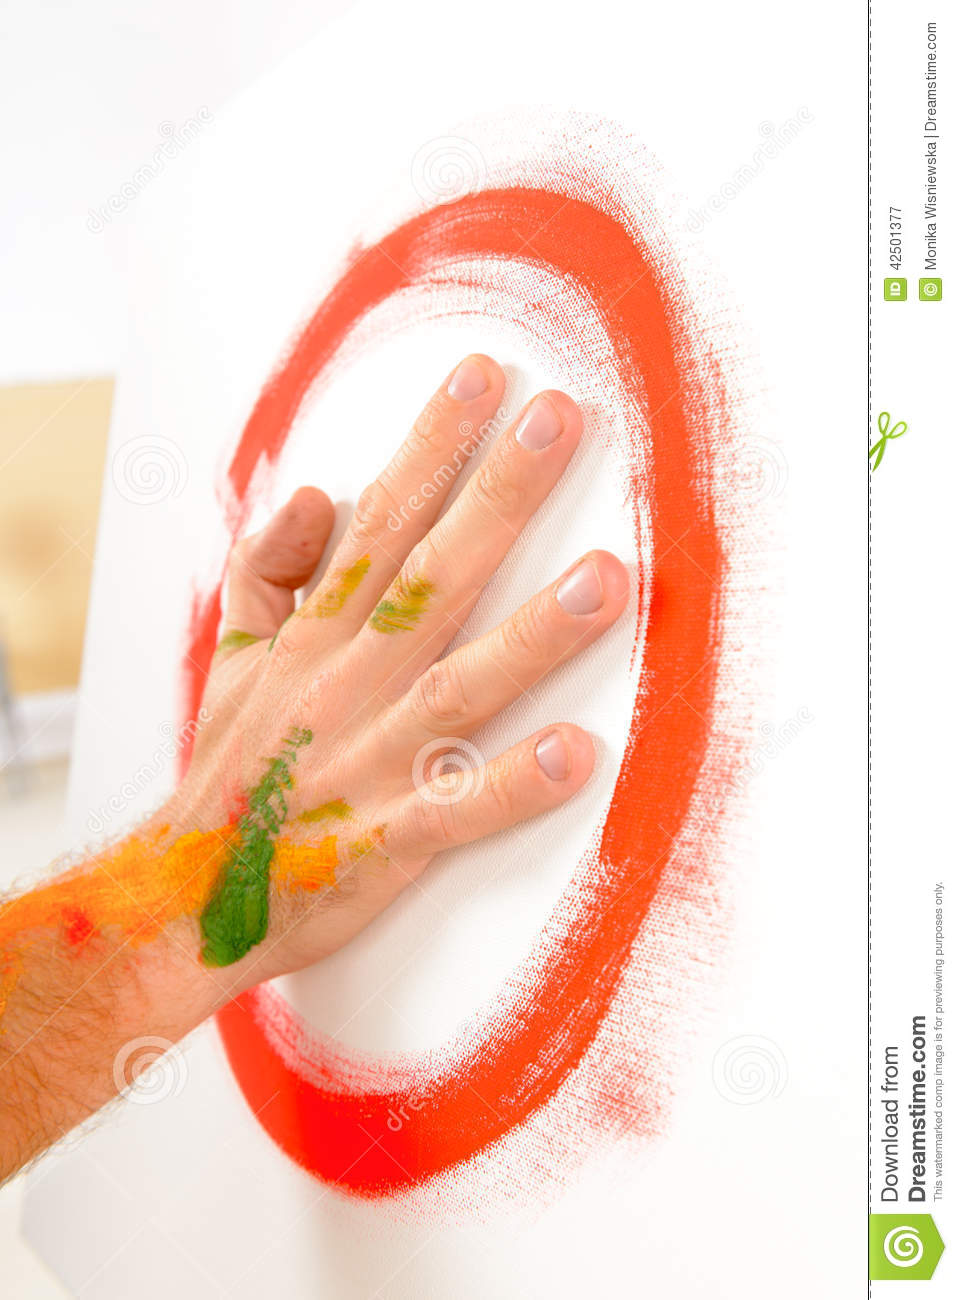 finger painting paint with palms stock image image of imagination